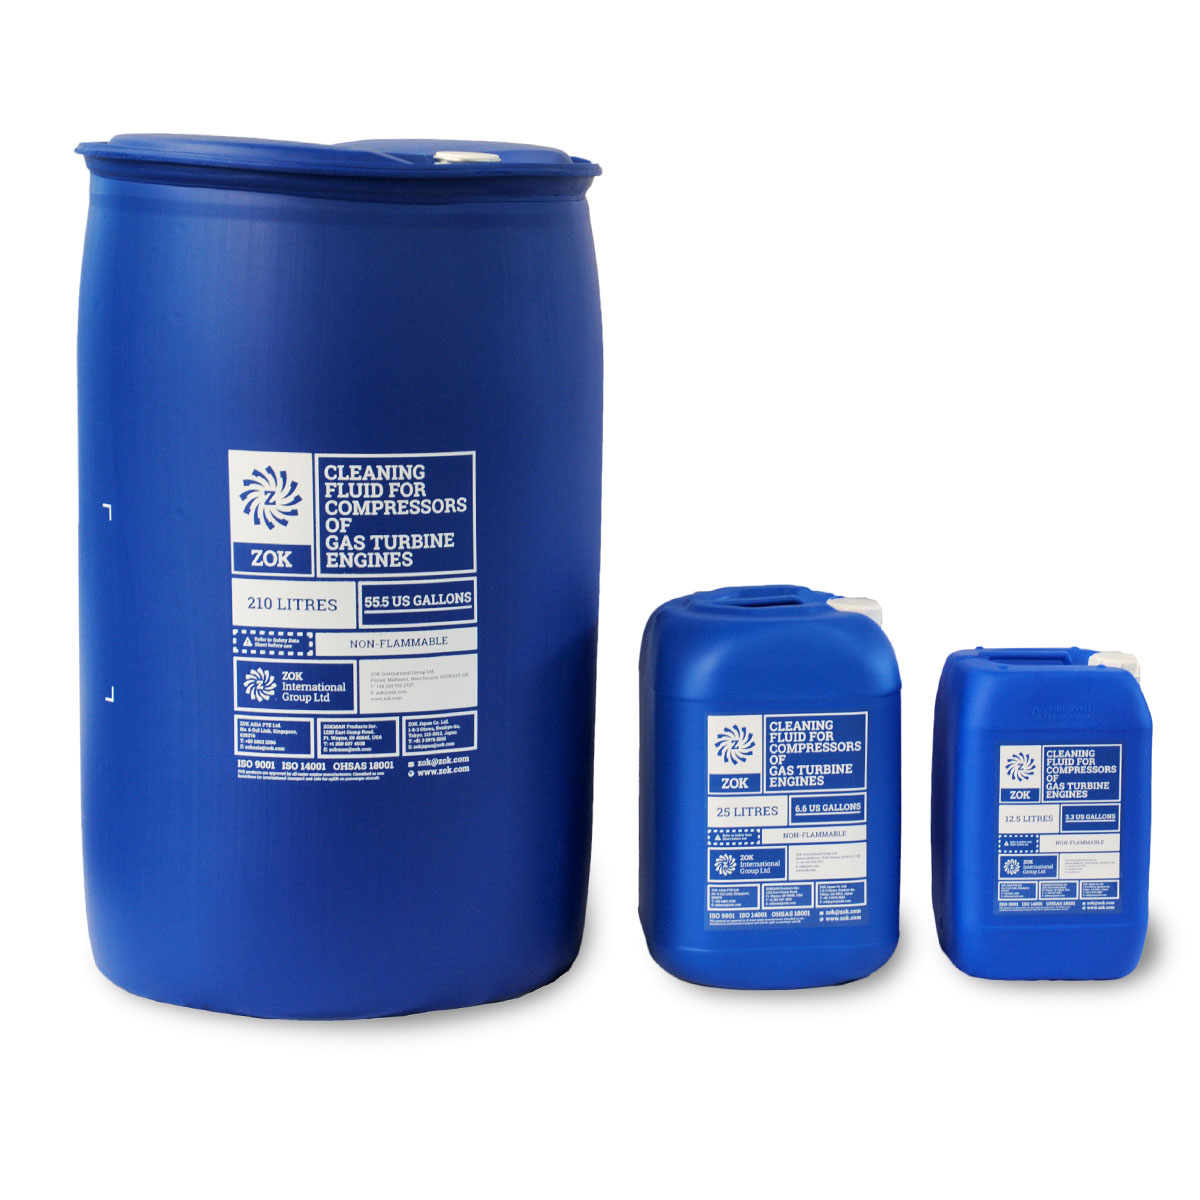 ZOK product containers